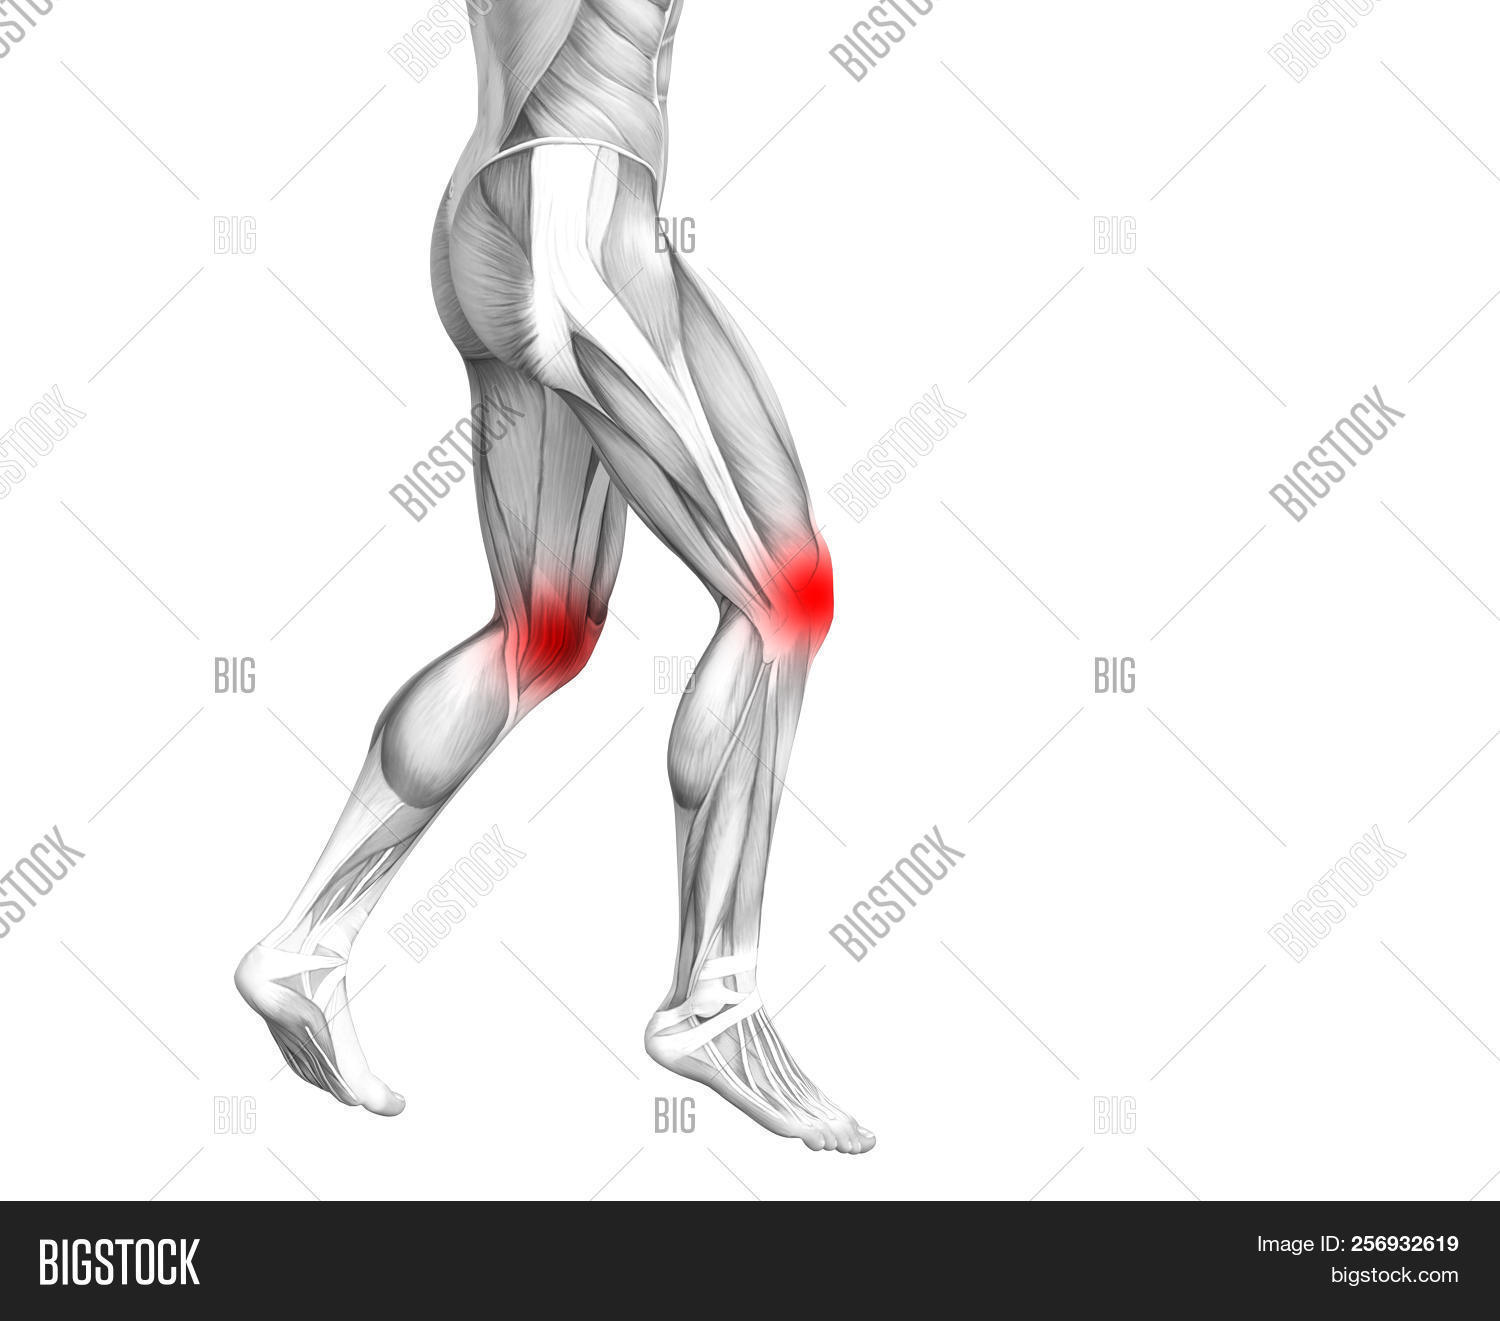 9301db6a2f3 Conceptual knee human anatomy with red hot spot inflammation or articular  joint pain for leg health